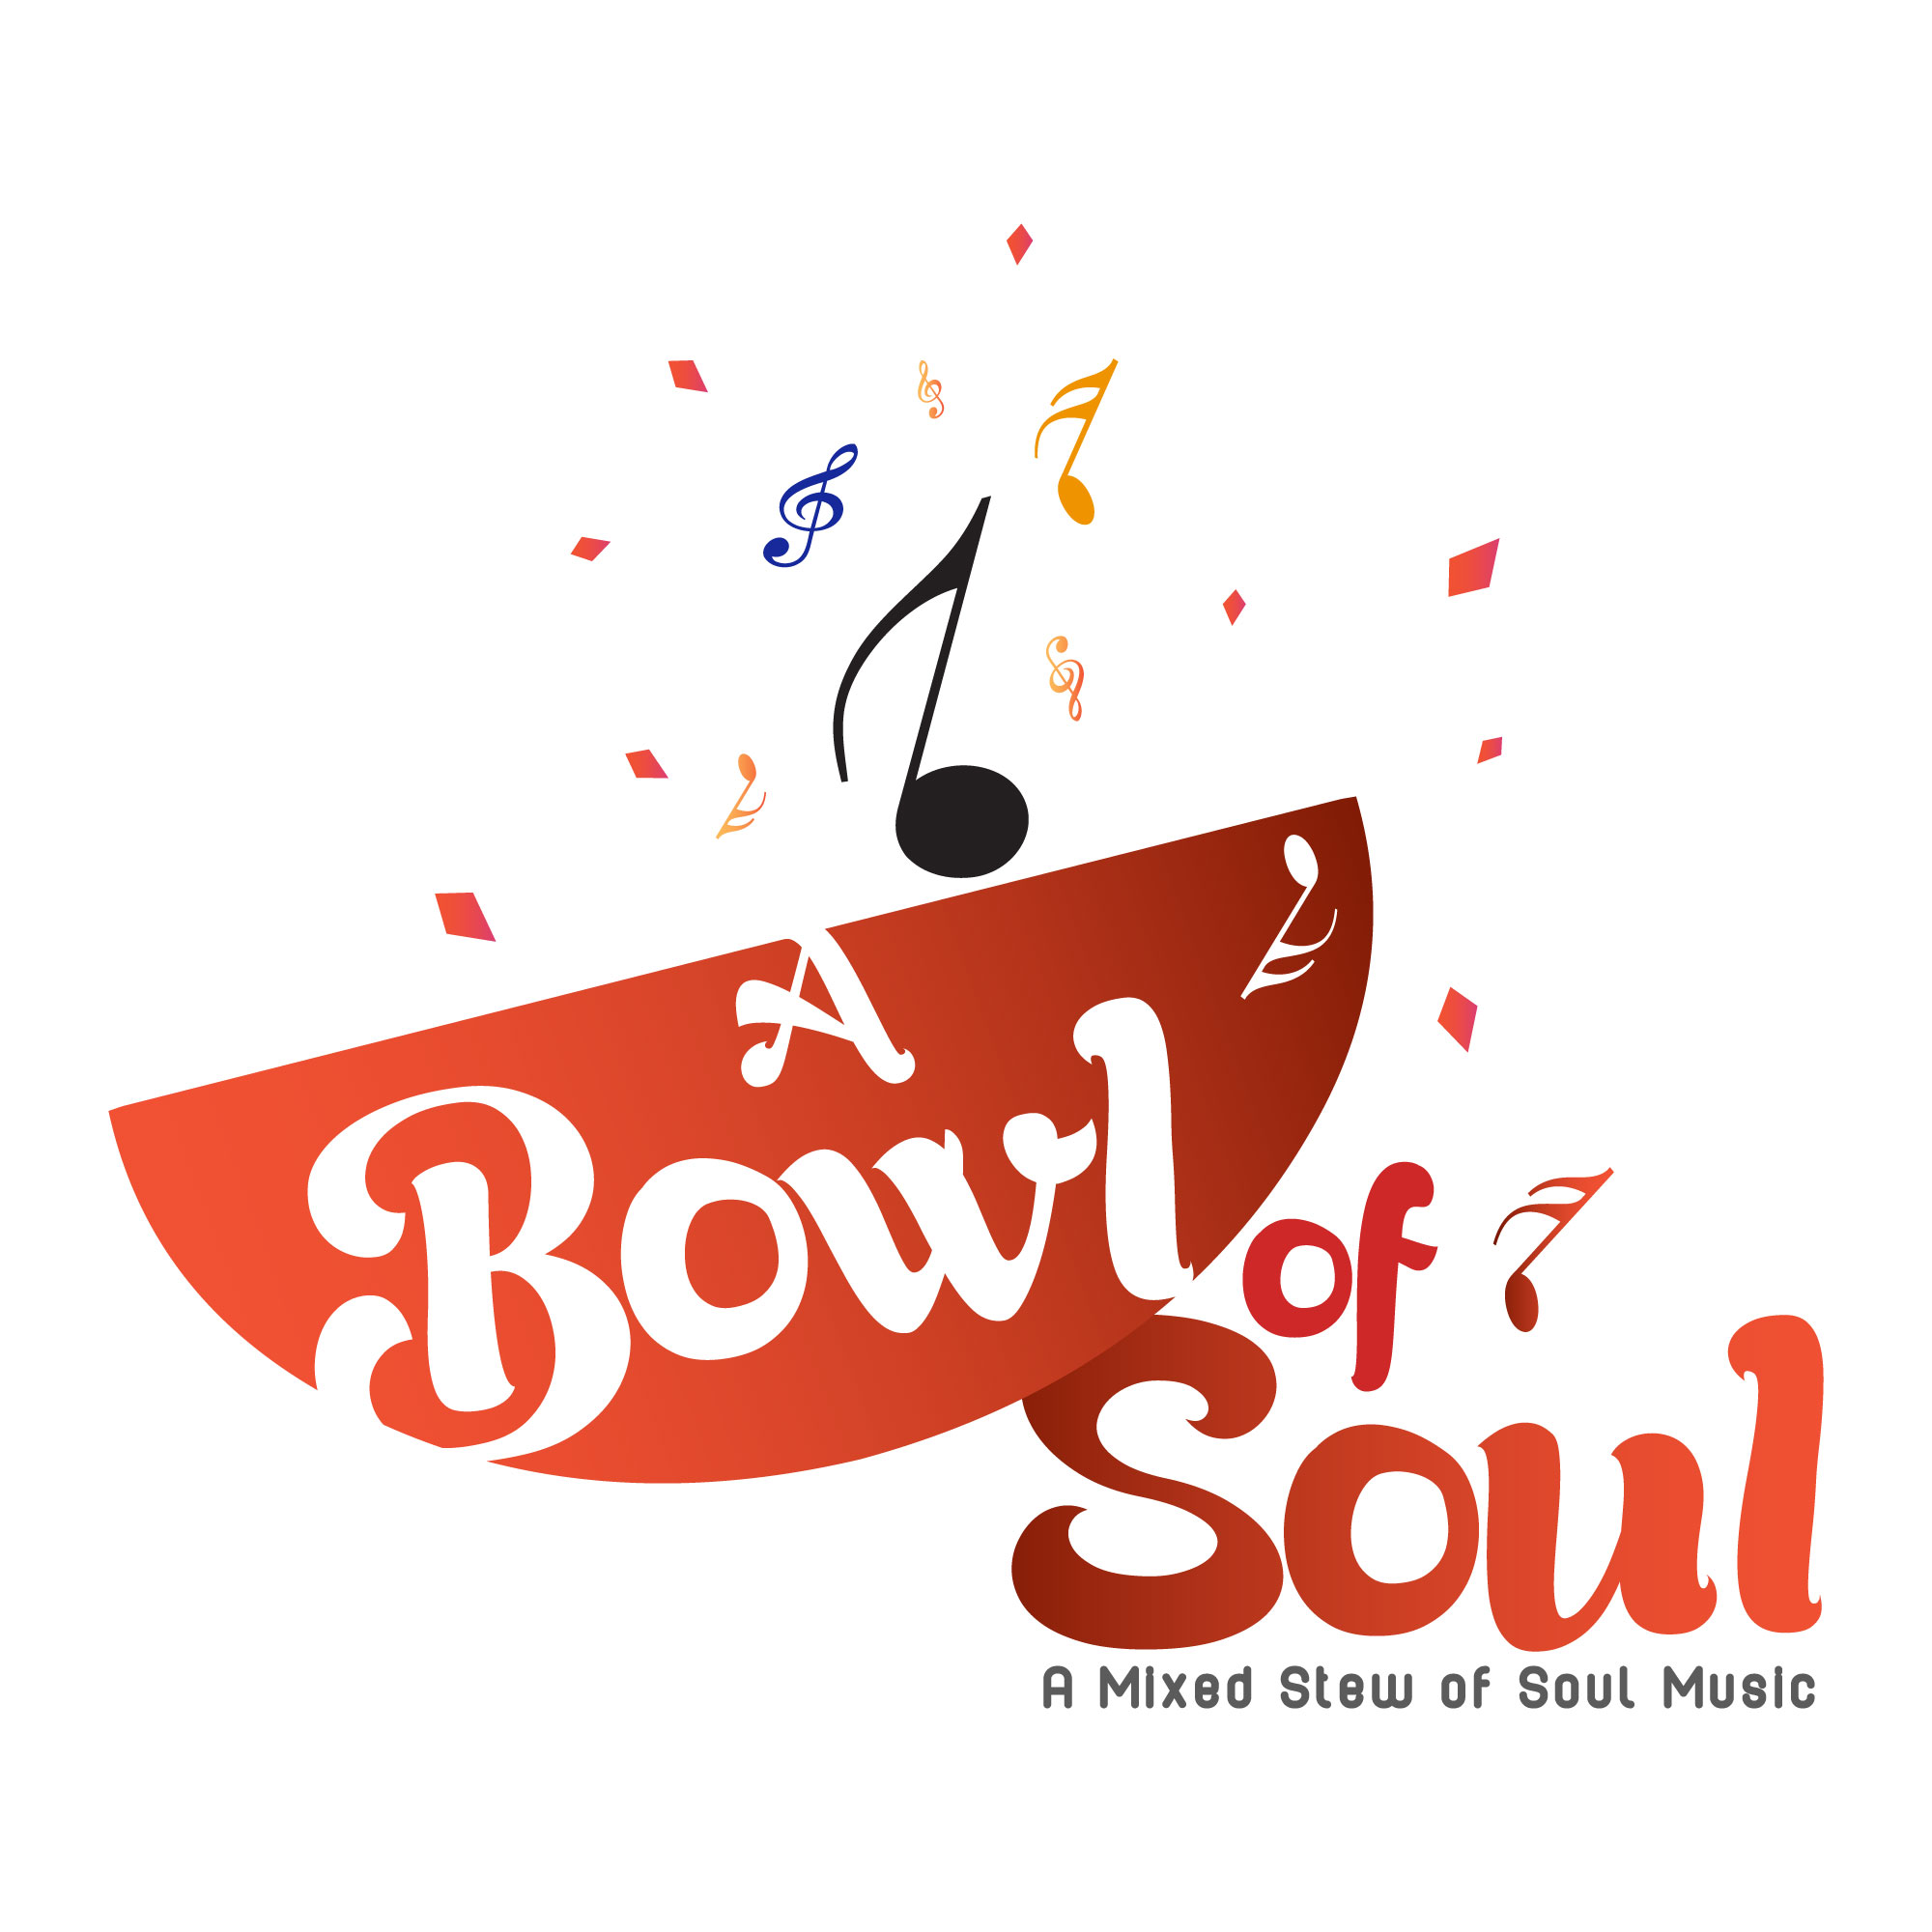 A Bowl of Soul A Mixed Stew of Soul Music Broadcast - 02-11-2021 - A Bowl of Soul Celebrates New R&B Music for 2021. Rest in Peace Ms. Mary Wilson, Co-Founder of The Supremes and Ms. Cicely Tyson show art